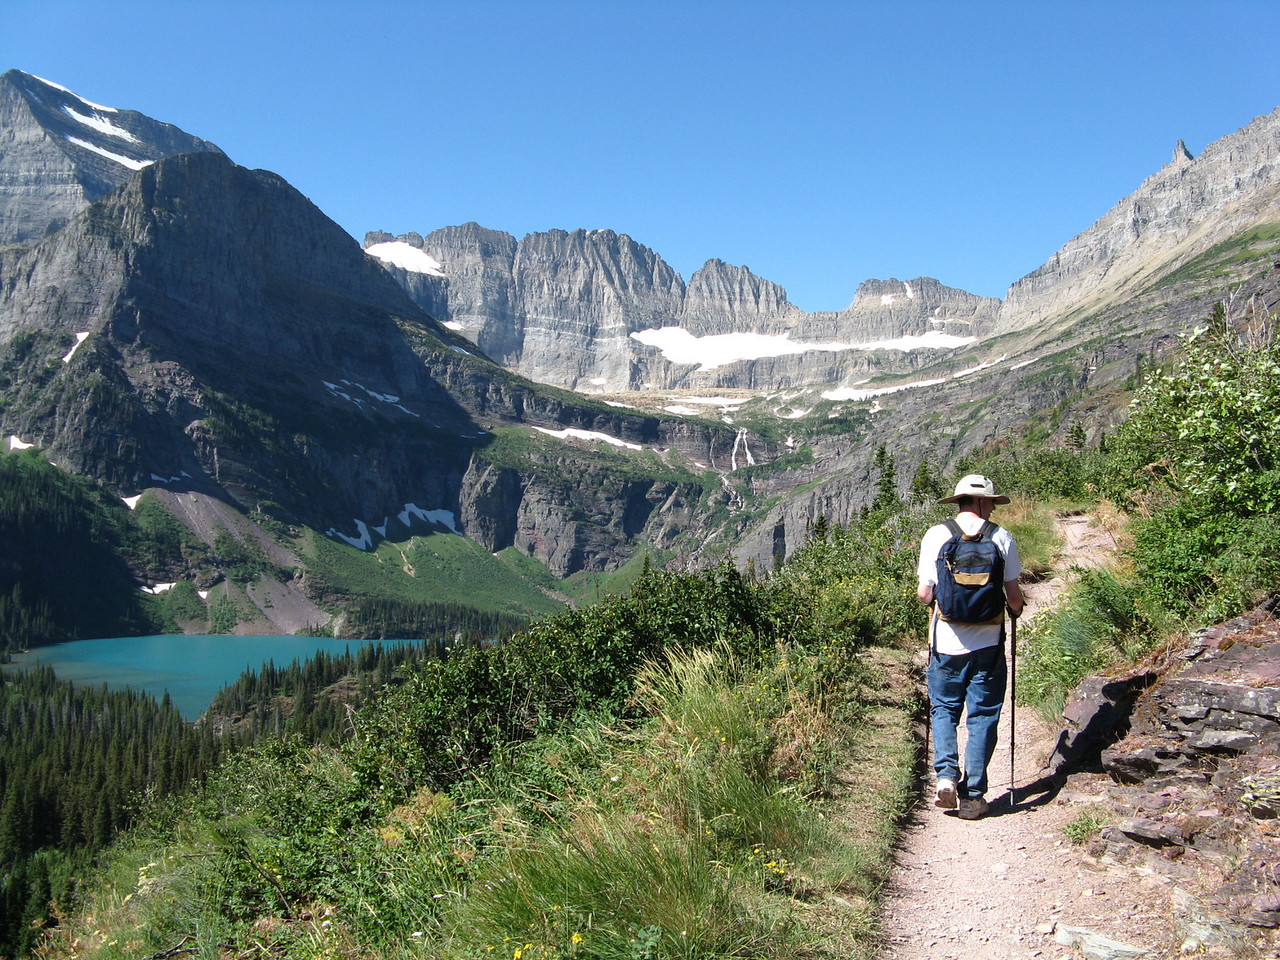 The turquoise lake on the left is Grinnell Lake.  Kevin.